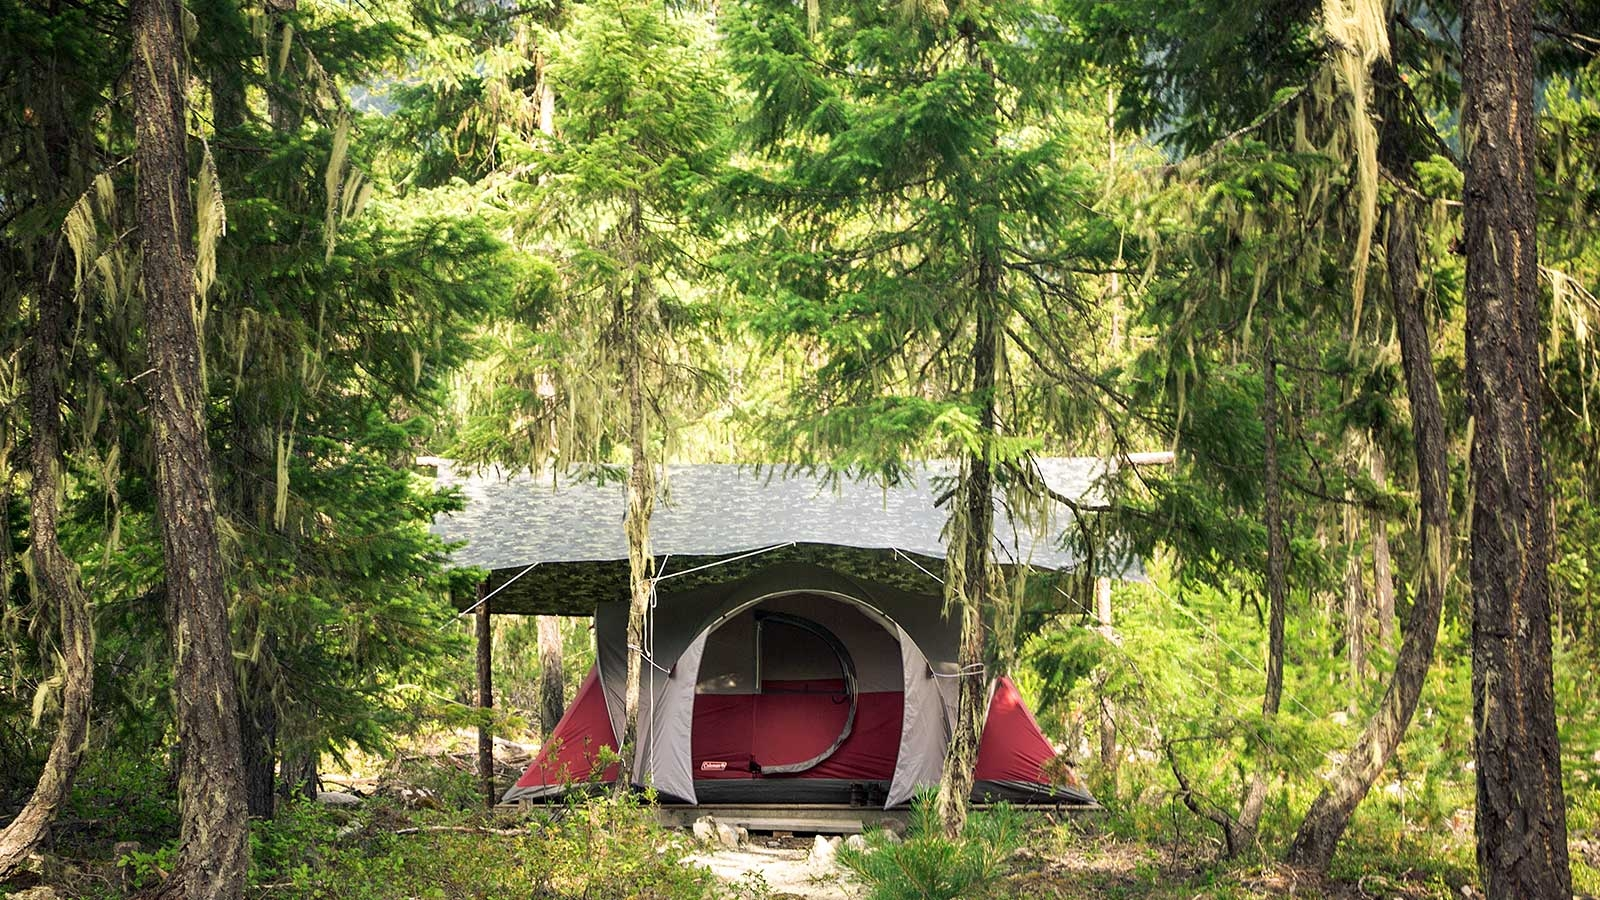 Tent in the middle of a lush green forrest close to Pemberton, BC Canada